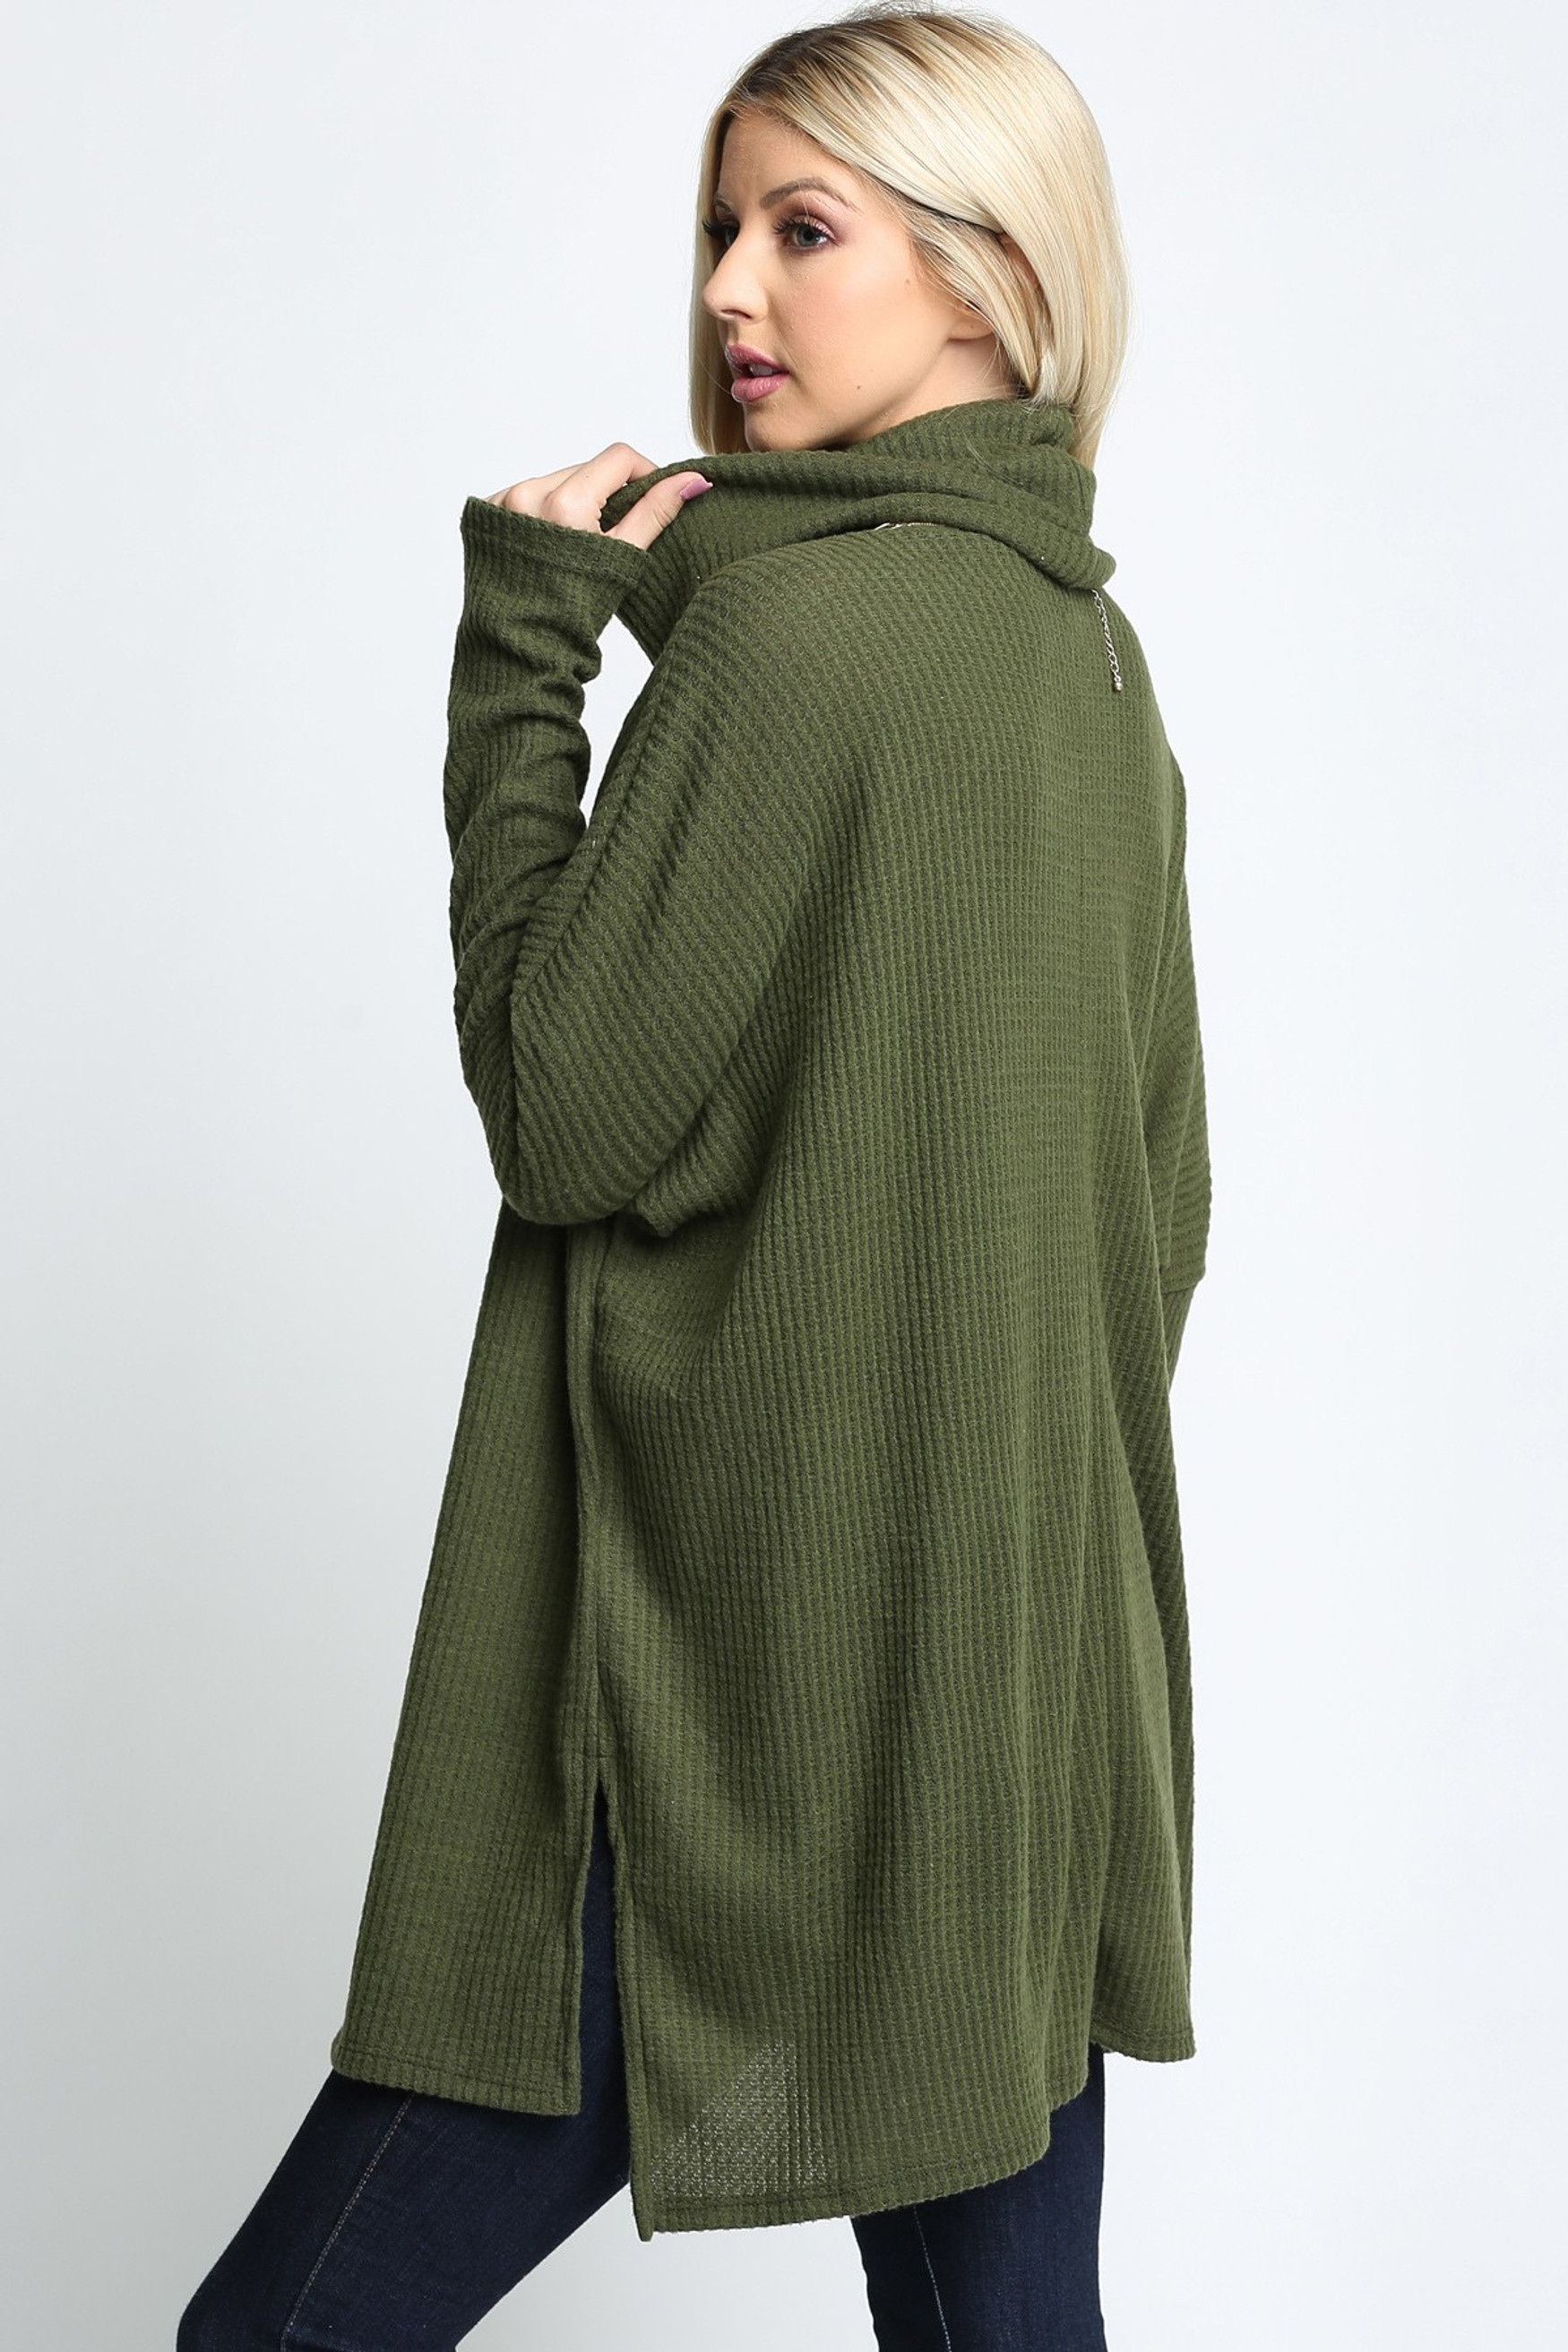 Olive Waffle Knit Cowl Neck Dolman Sleeve Plus Size Top